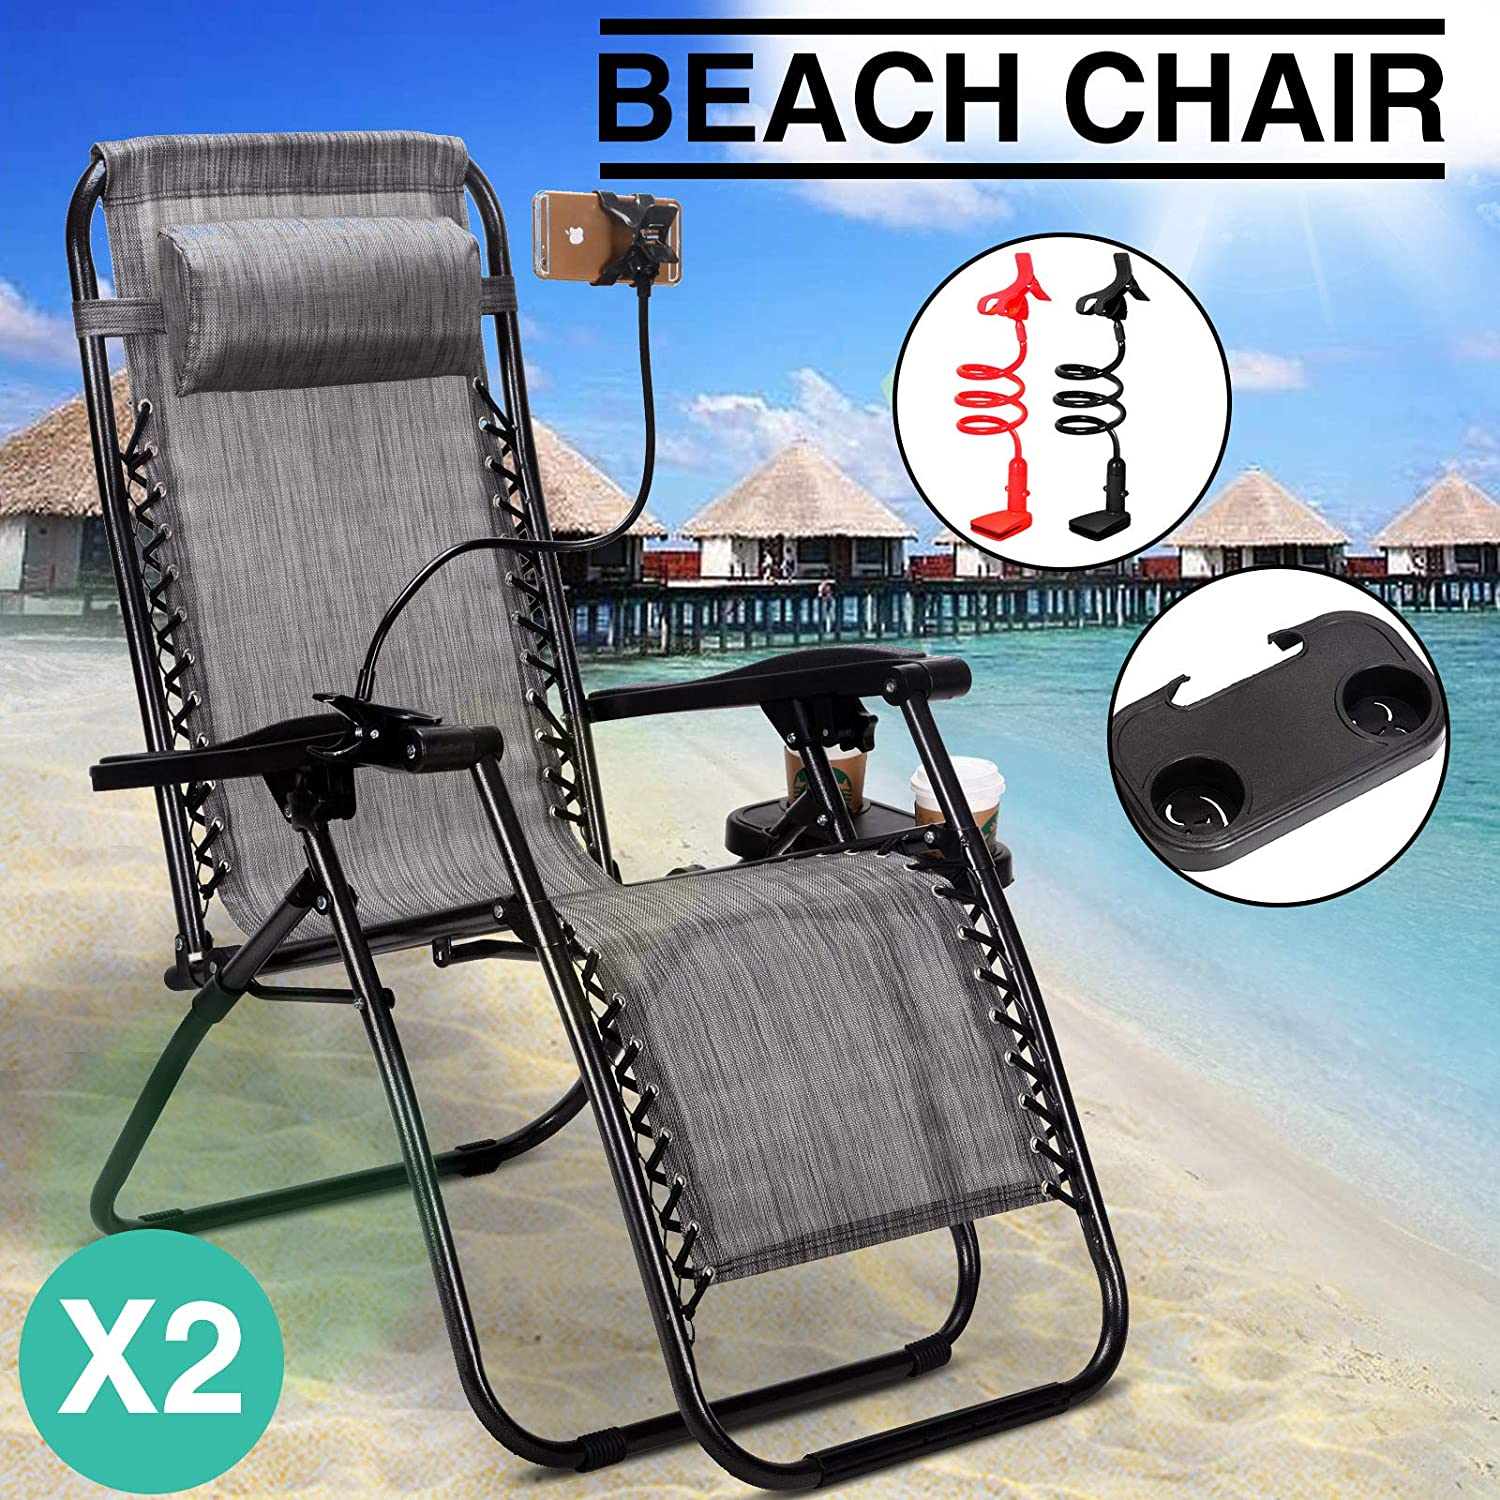 2 Pack of Zero Gravity Outdoor Folding Lounge Chairs w Sunshade Canopy Snack Tray,Adjustable Lawn Patio Reclining Chairs for Travel Yard Beach Pool Grey2